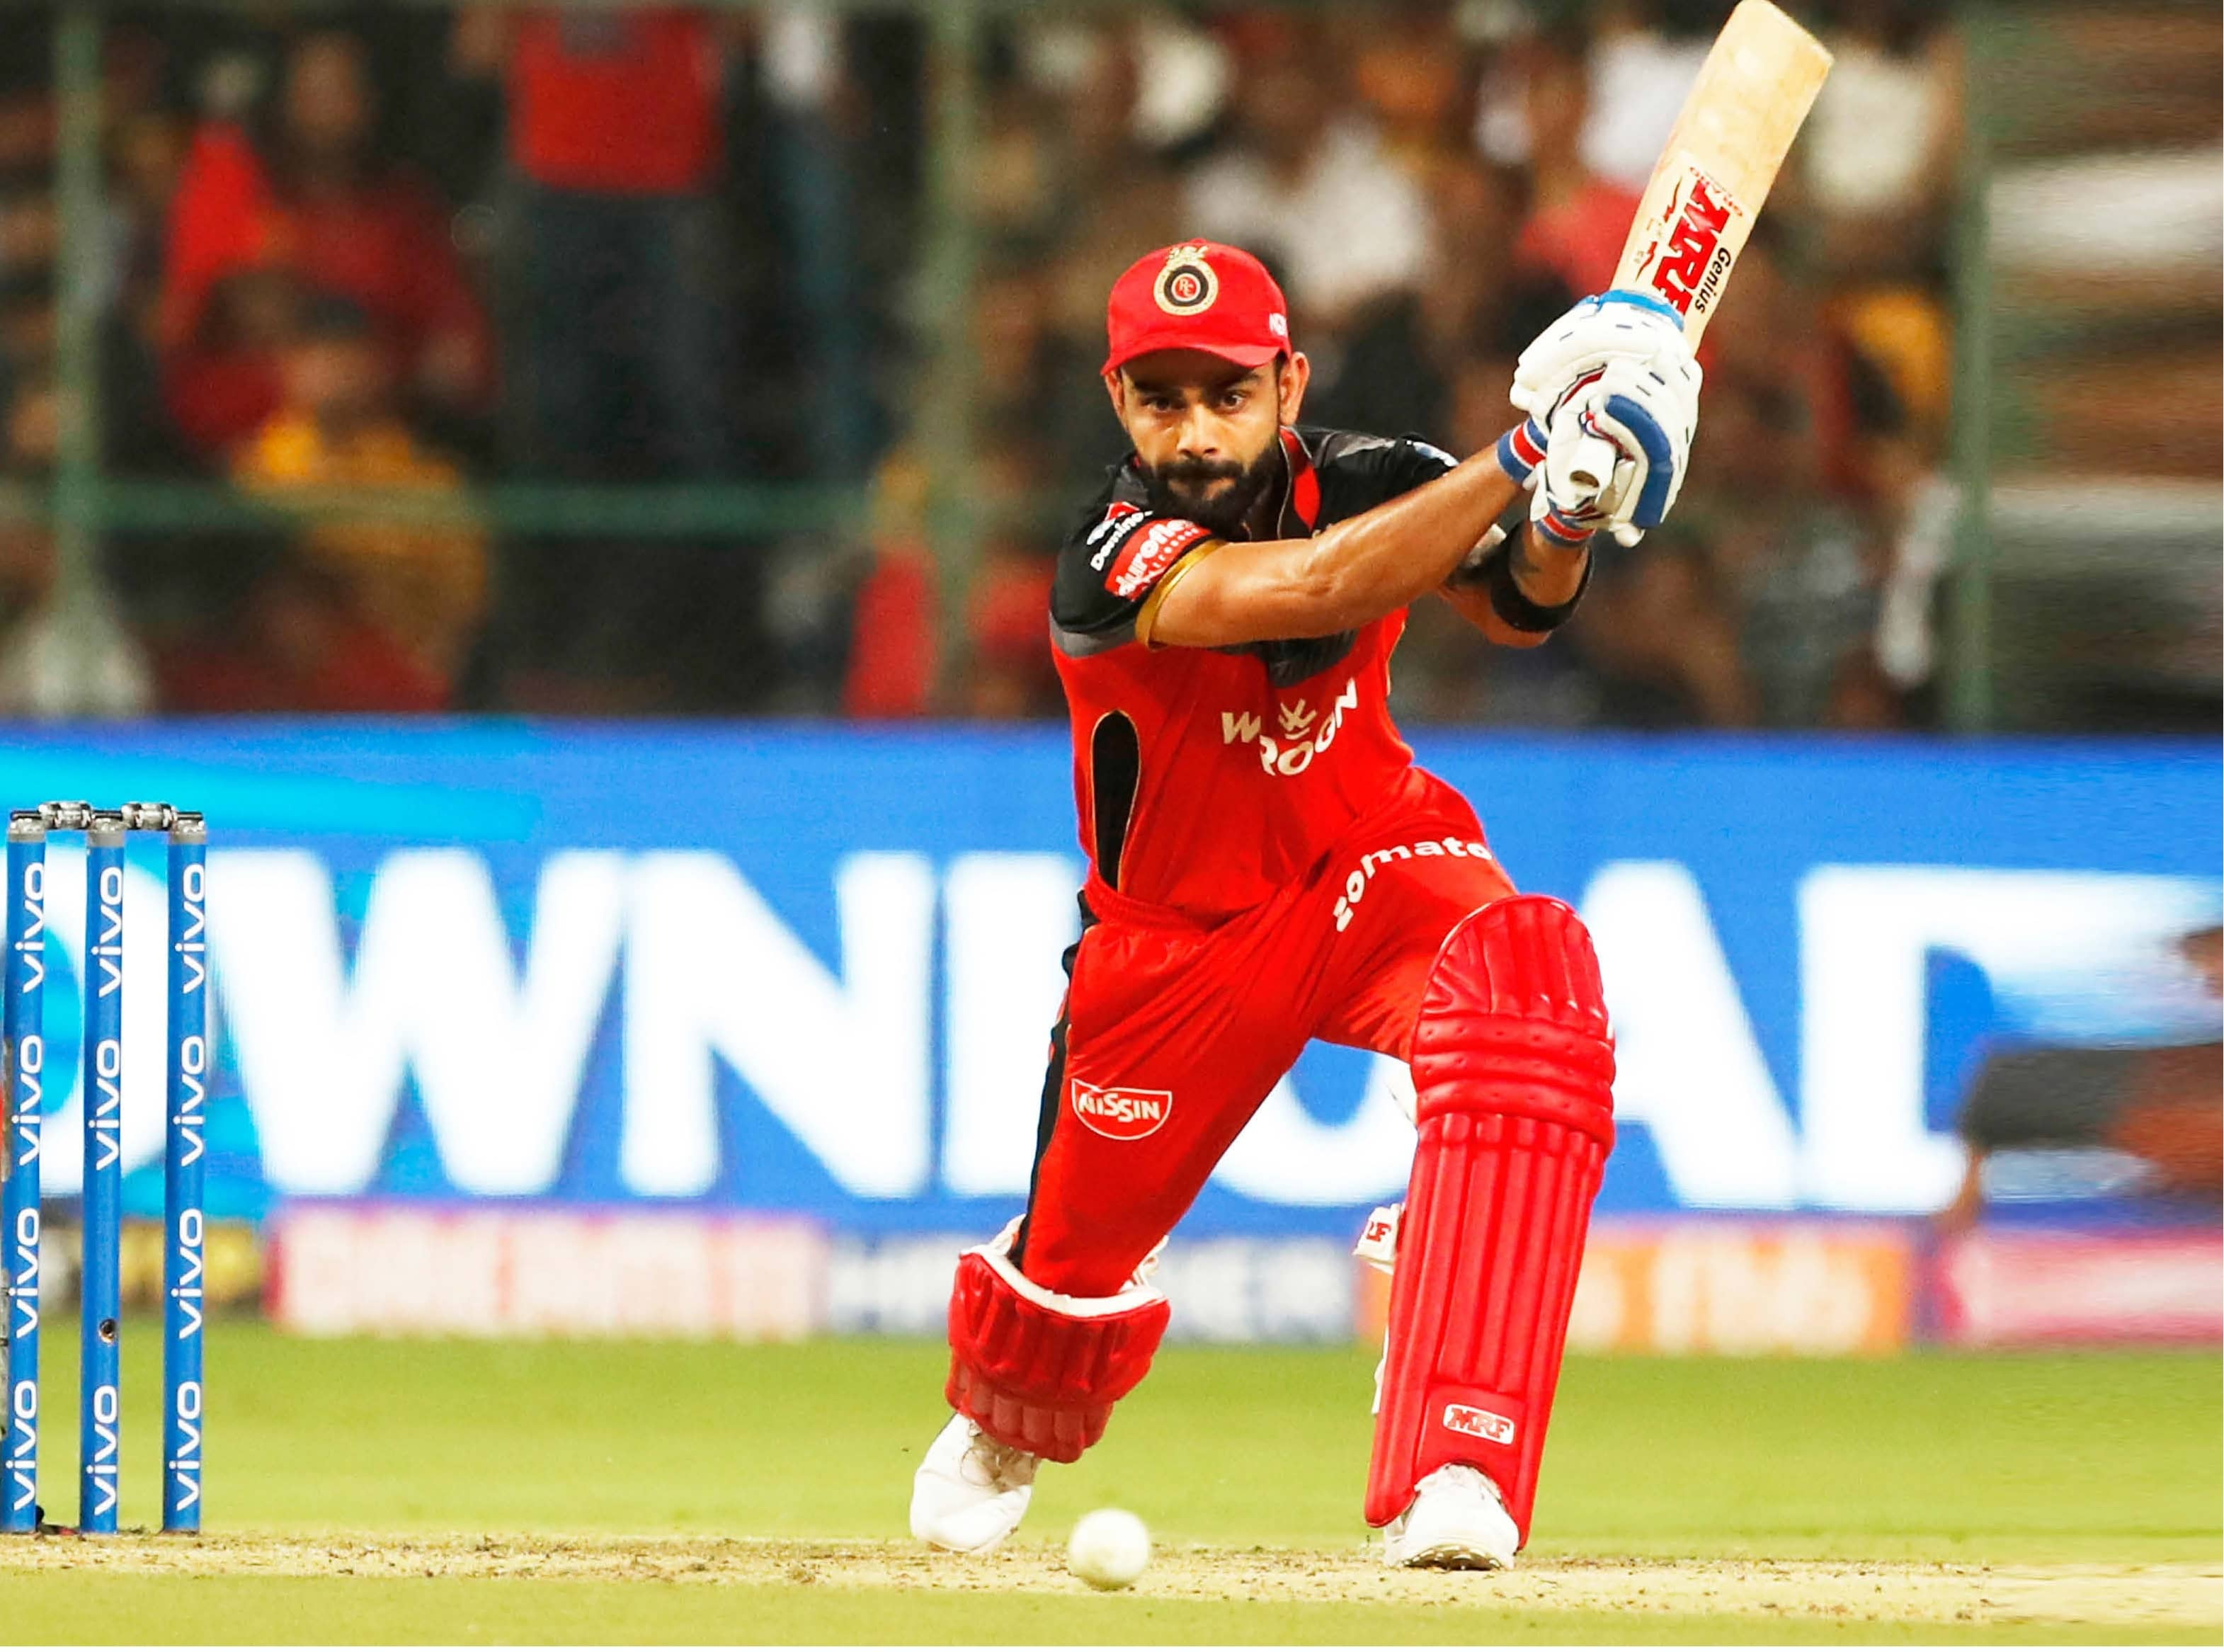 Amazing IPL Records You Must Know About